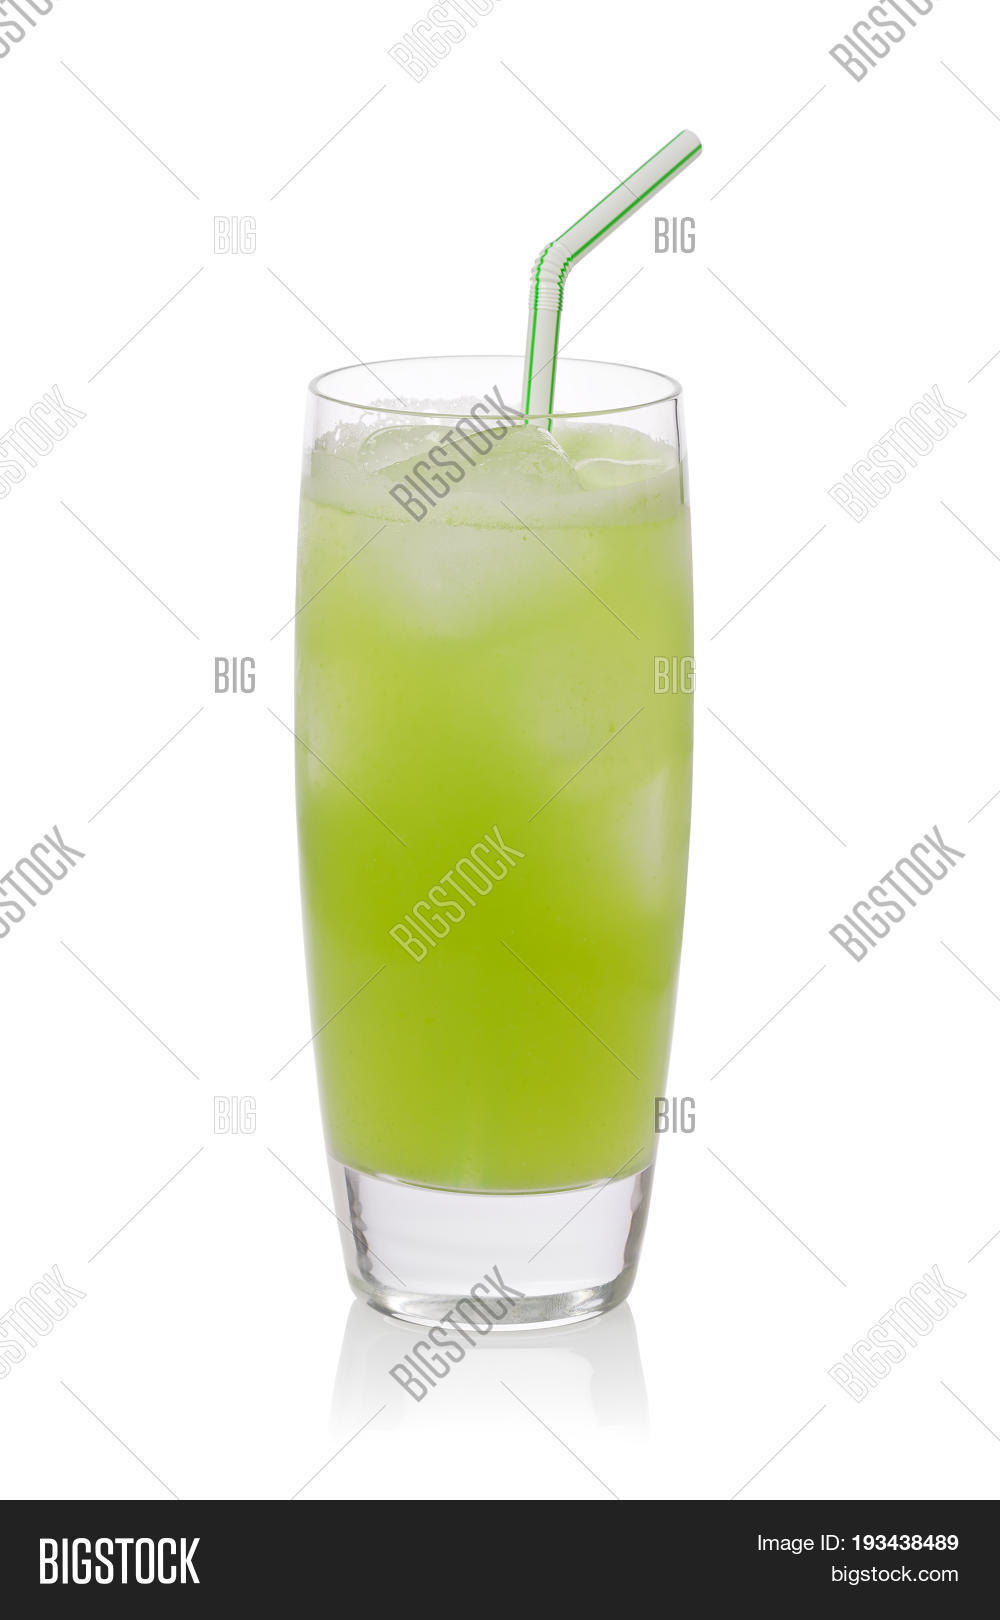 iced cold cactus drink image photo free trial bigstock